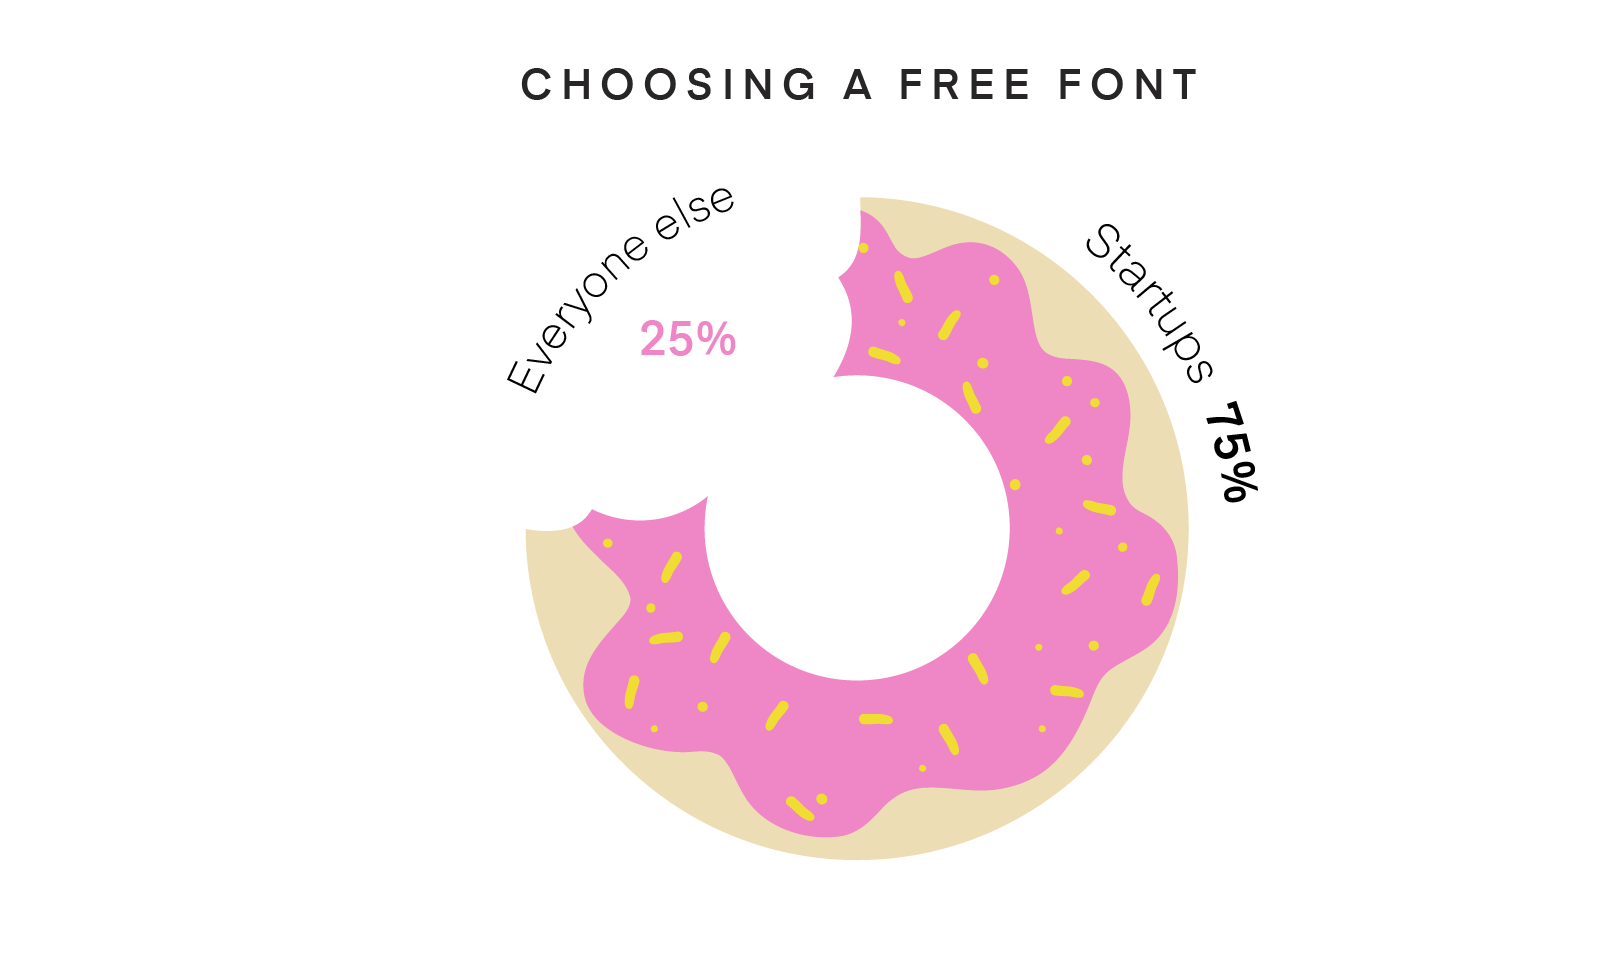 Pie chart of free fonts, in the shape of a donut